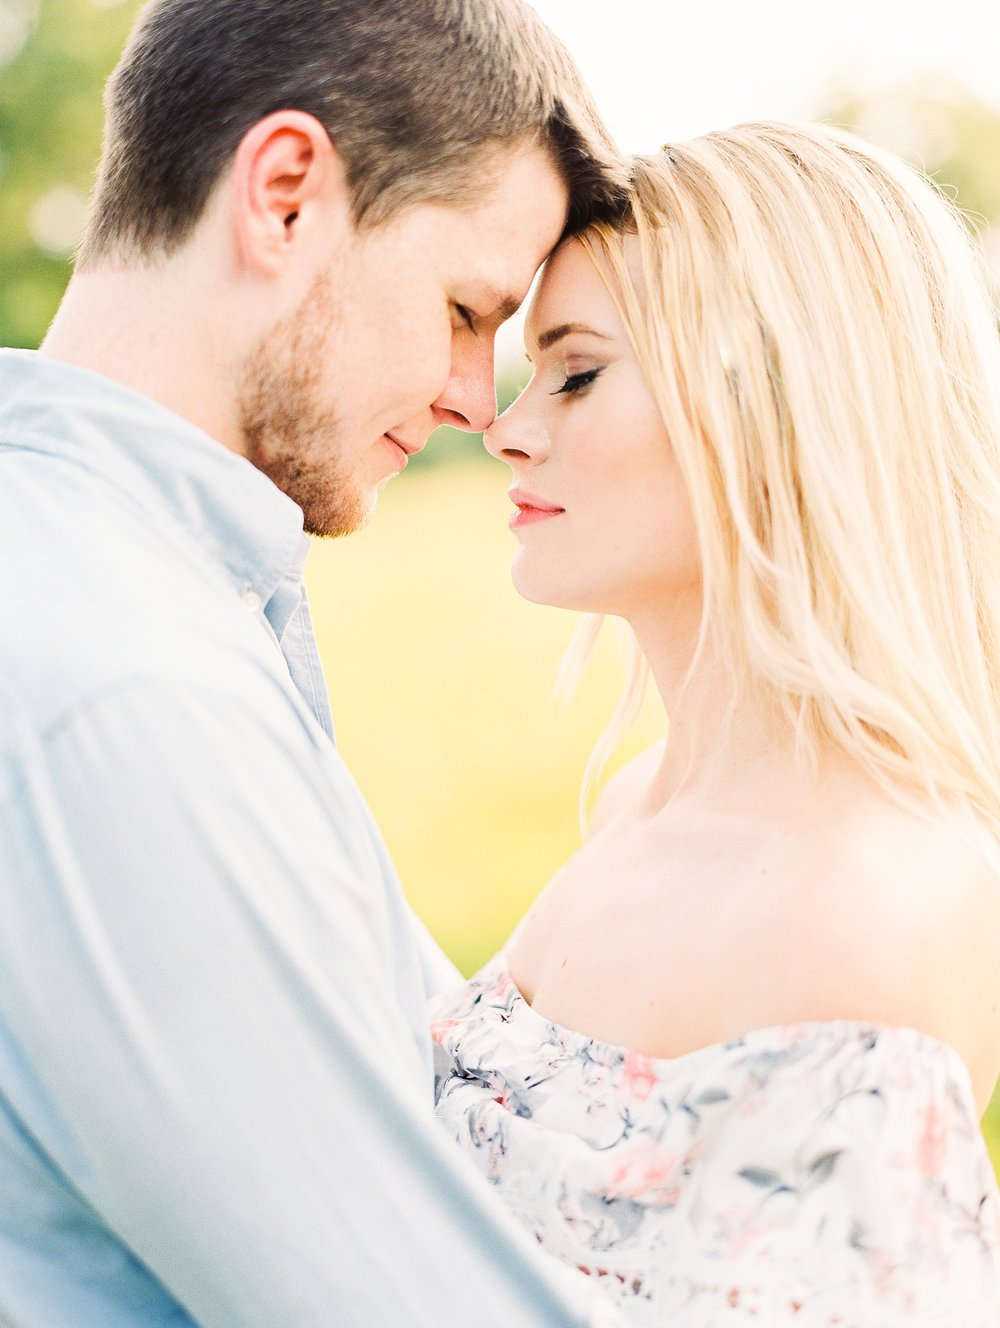 Peach-Orchard-Engagement-Session-Arkansas_0050.jpg